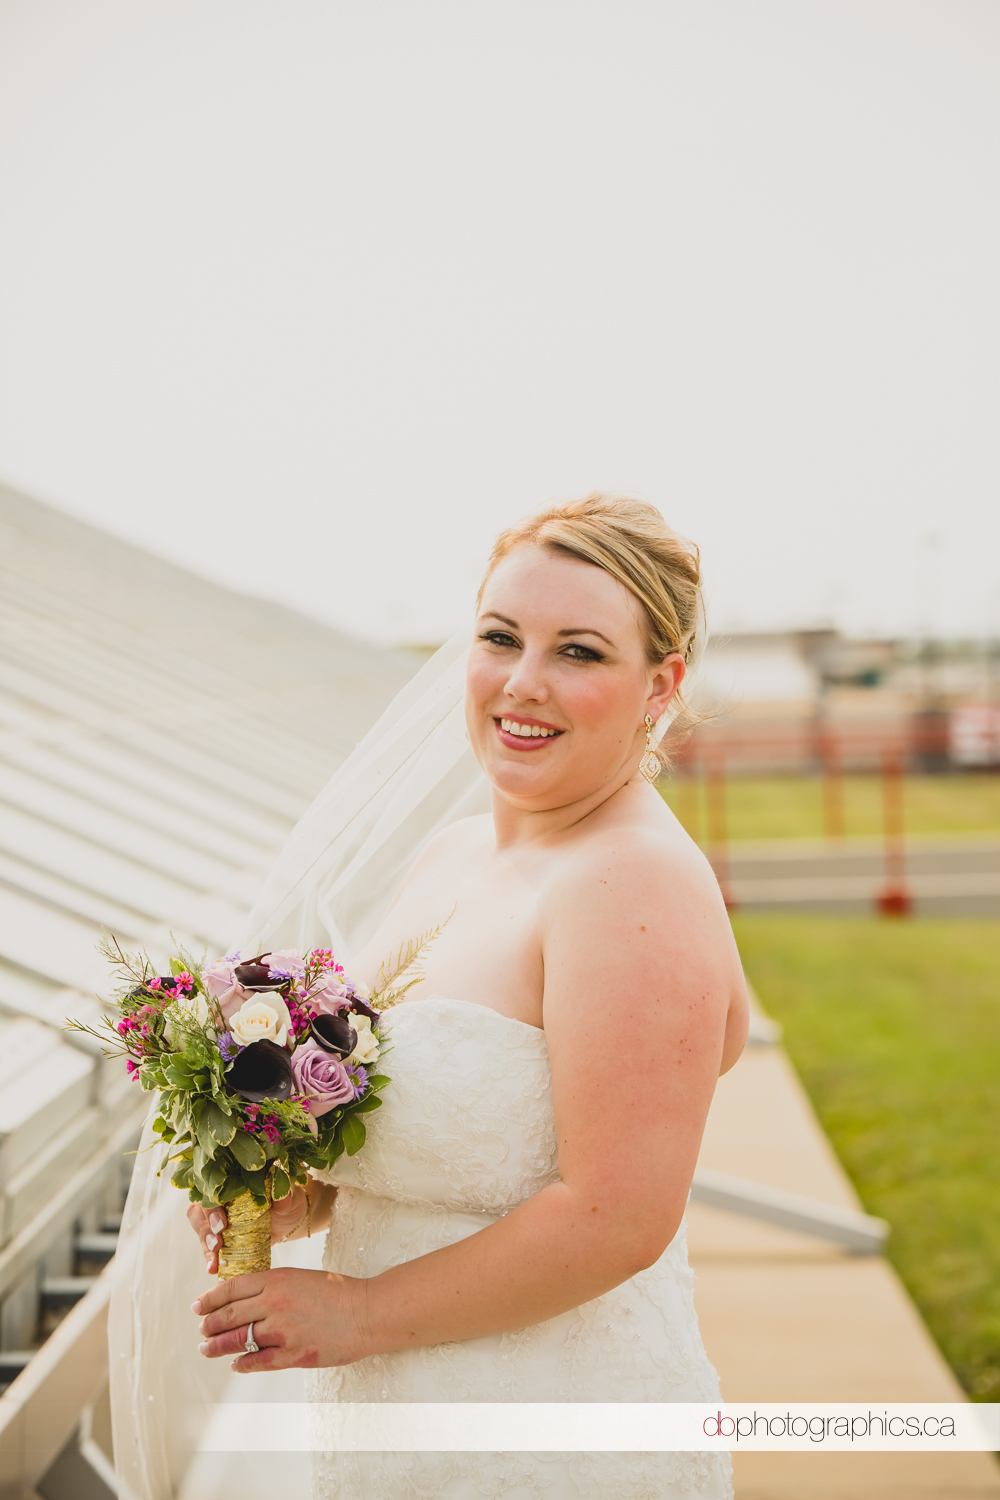 Lauren & Tim's Wedding - 20150829 - 0523.jpg